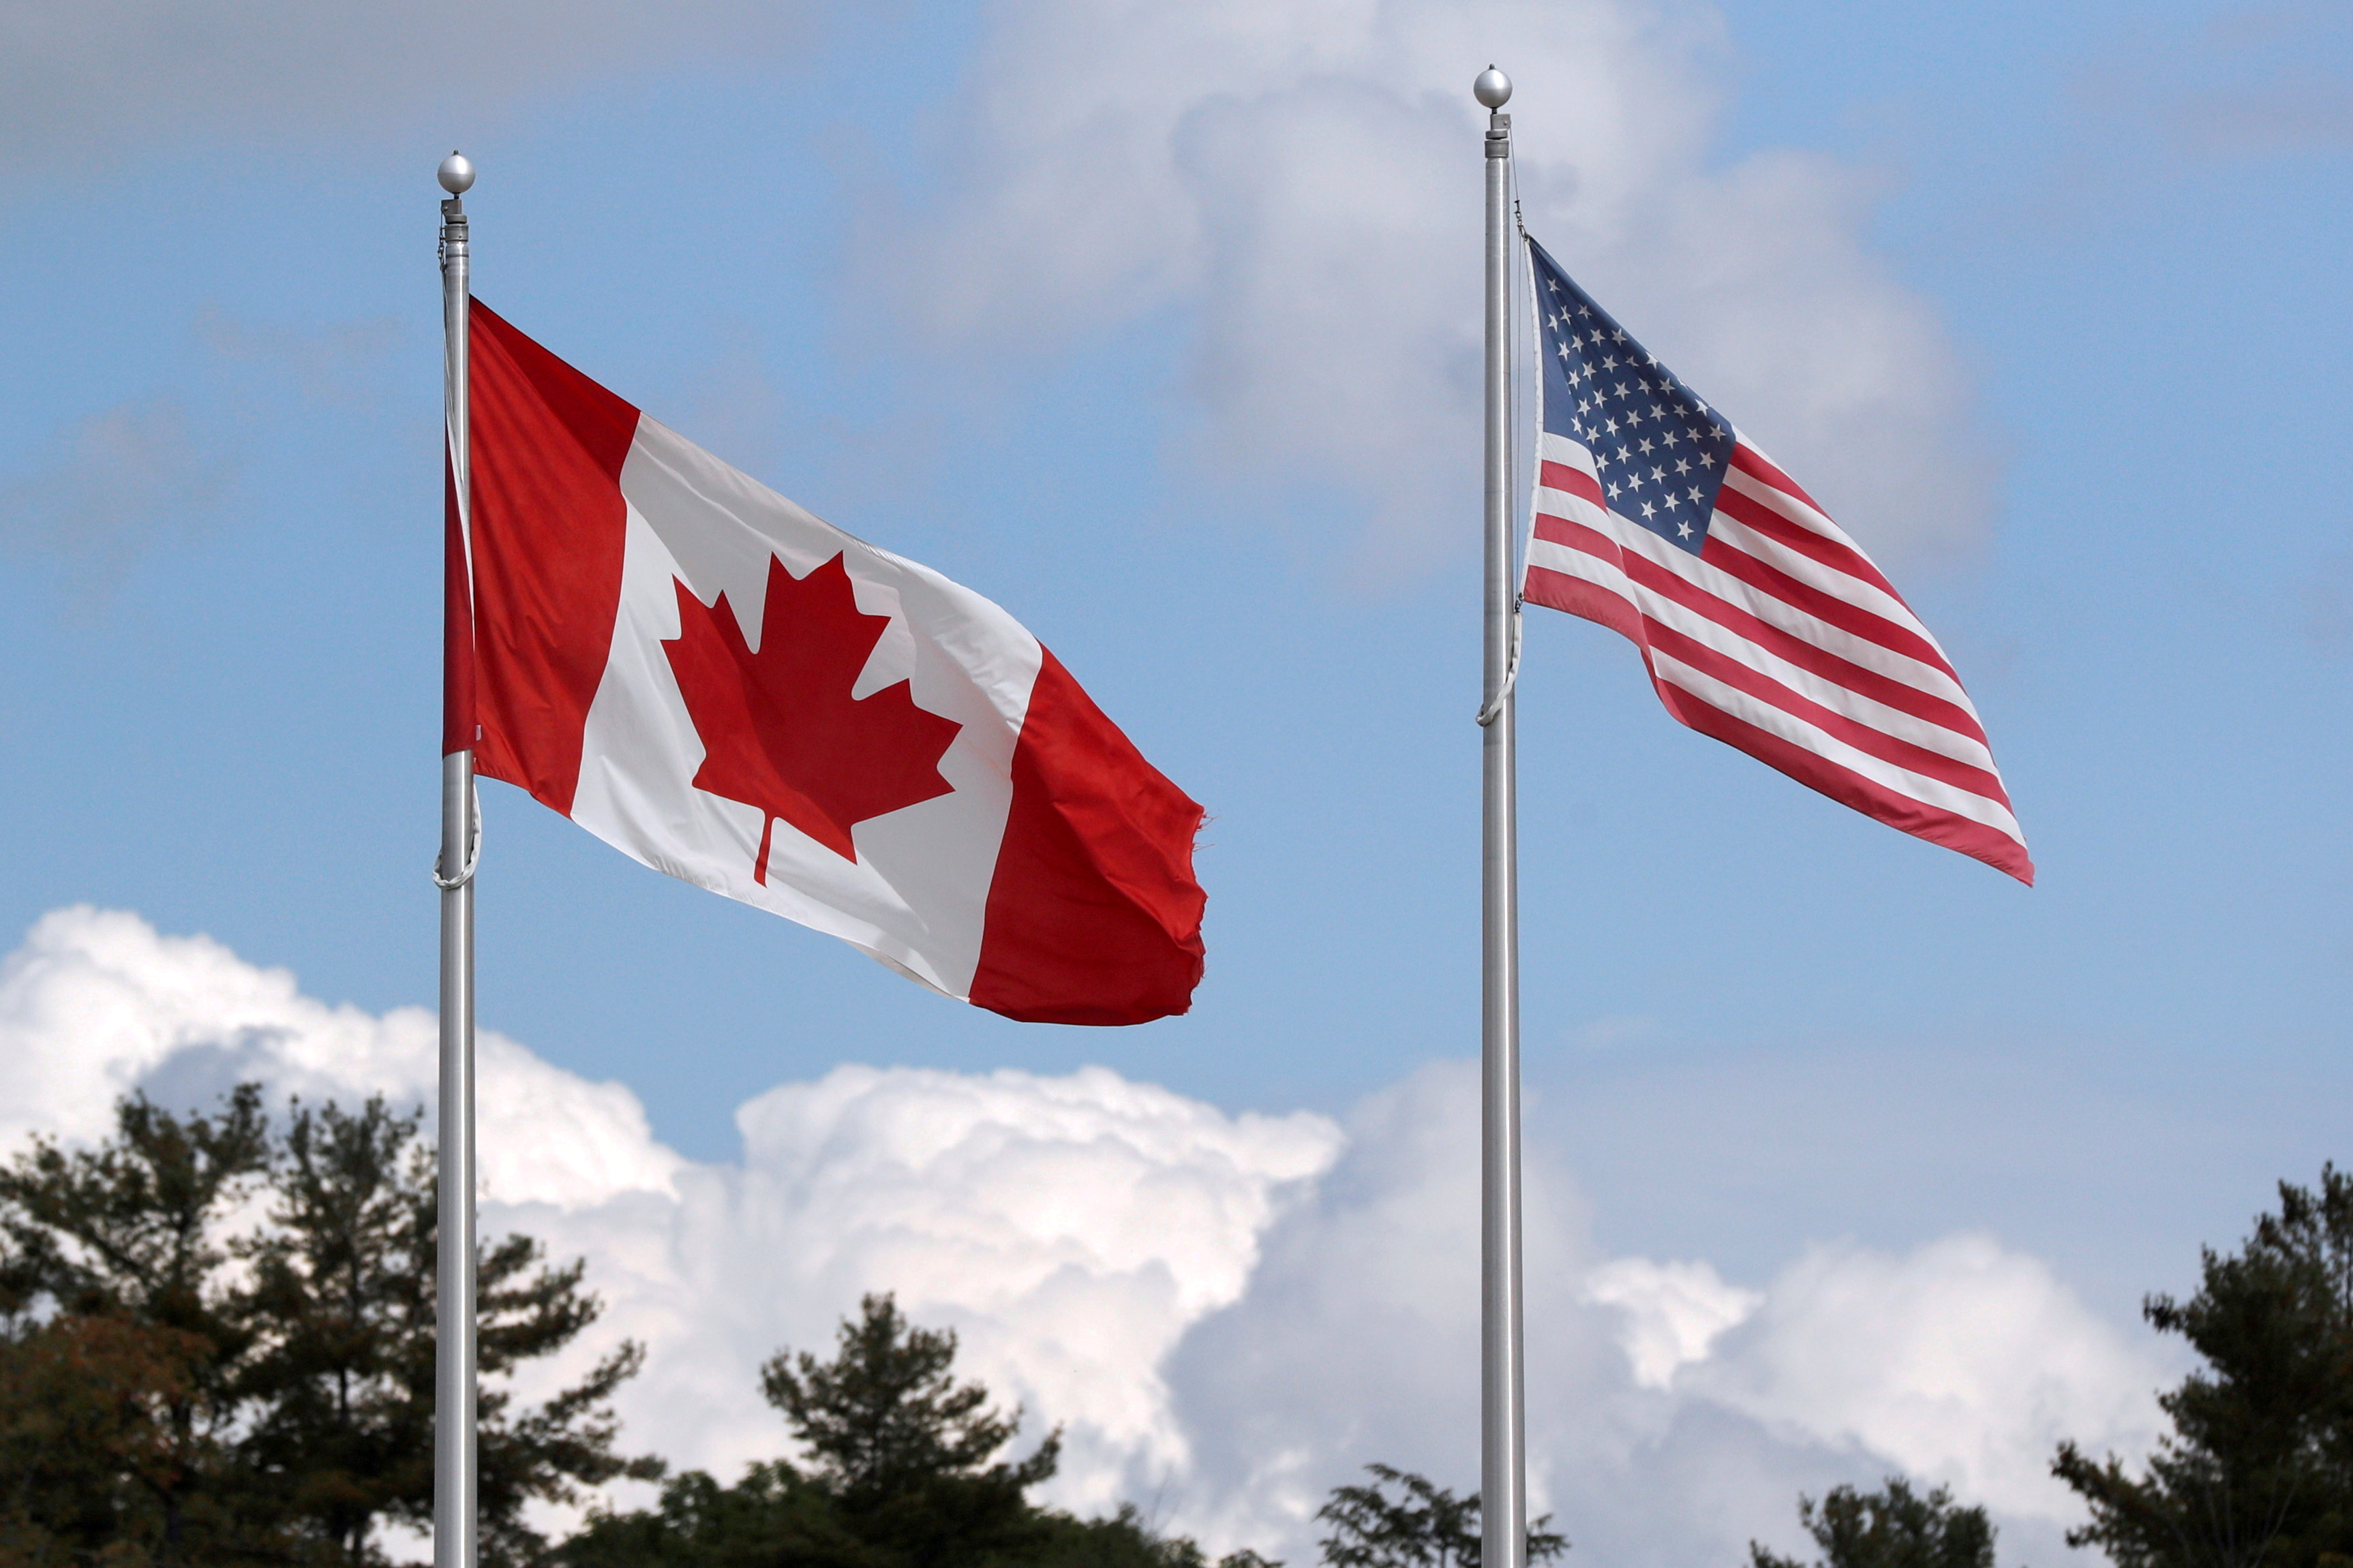 A U.S. and a Canadian flag flutter at the Canada-United States border crossing at the Thousand Islands Bridge, which remains closed to non-essential traffic to combat the spread of the coronavirus disease (COVID-19) in Lansdowne, Ontario, Canada September 28, 2020.  REUTERS/Lars Hagberg